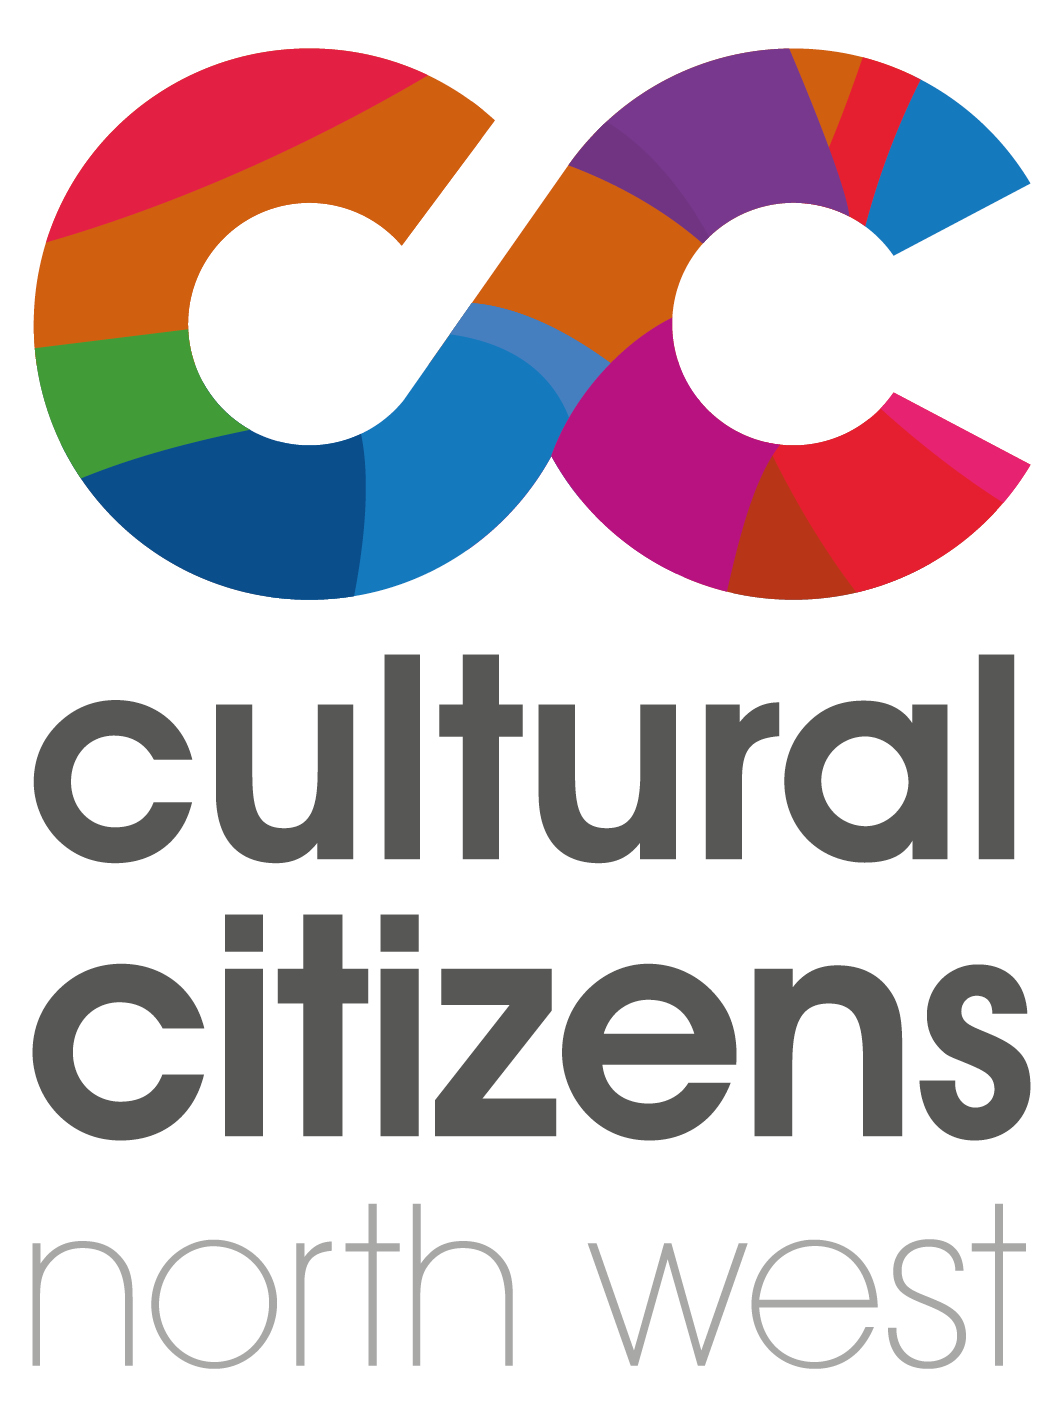 Cultural Citizens NW logo